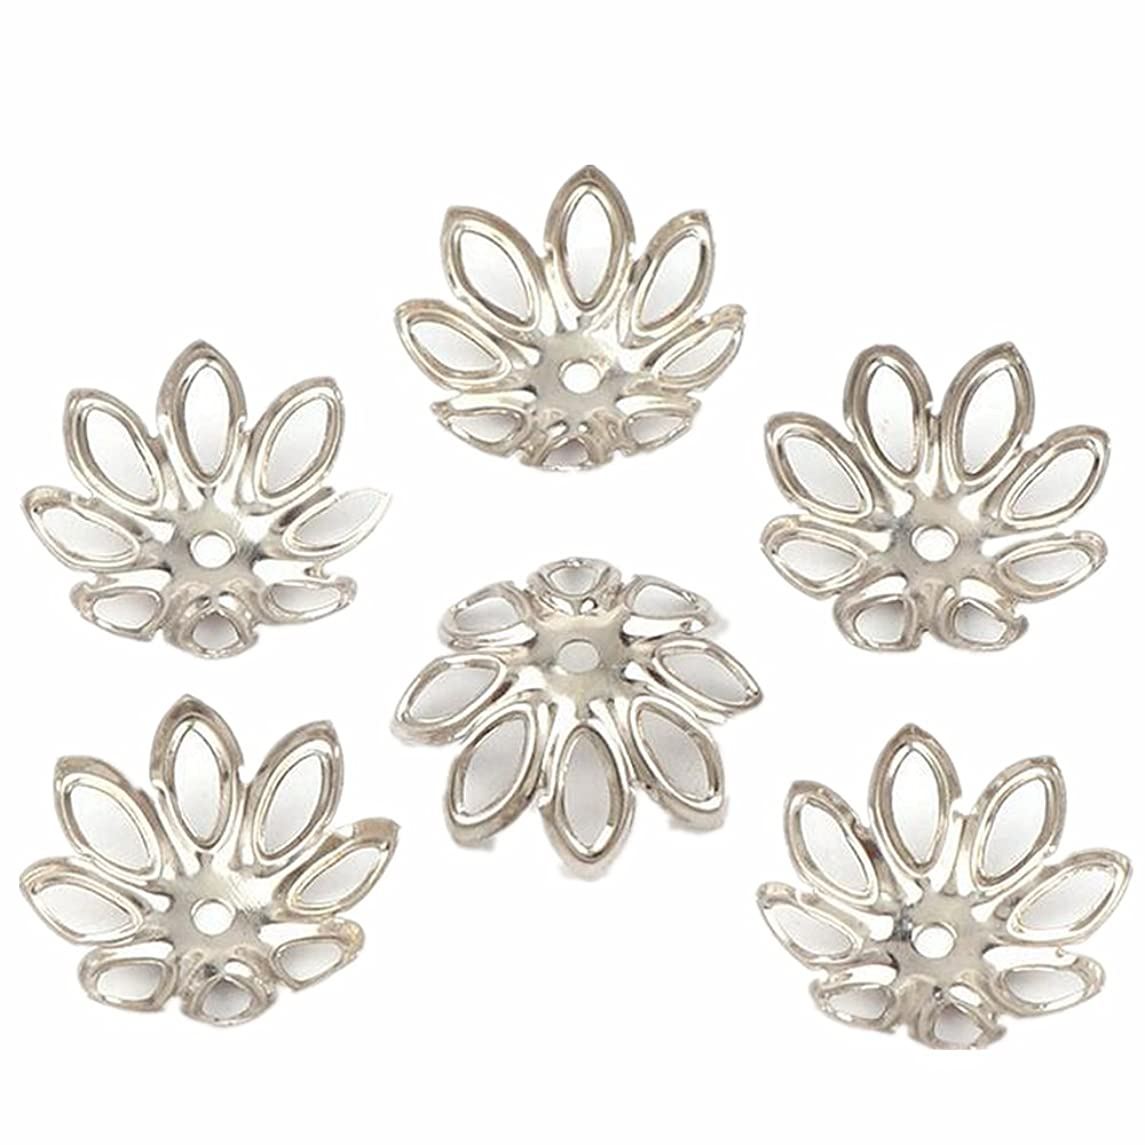 500PCS 15mm Gold Tone Flower Bead Caps Hollow Flower Bead Caps For Jewelry Making (white k)